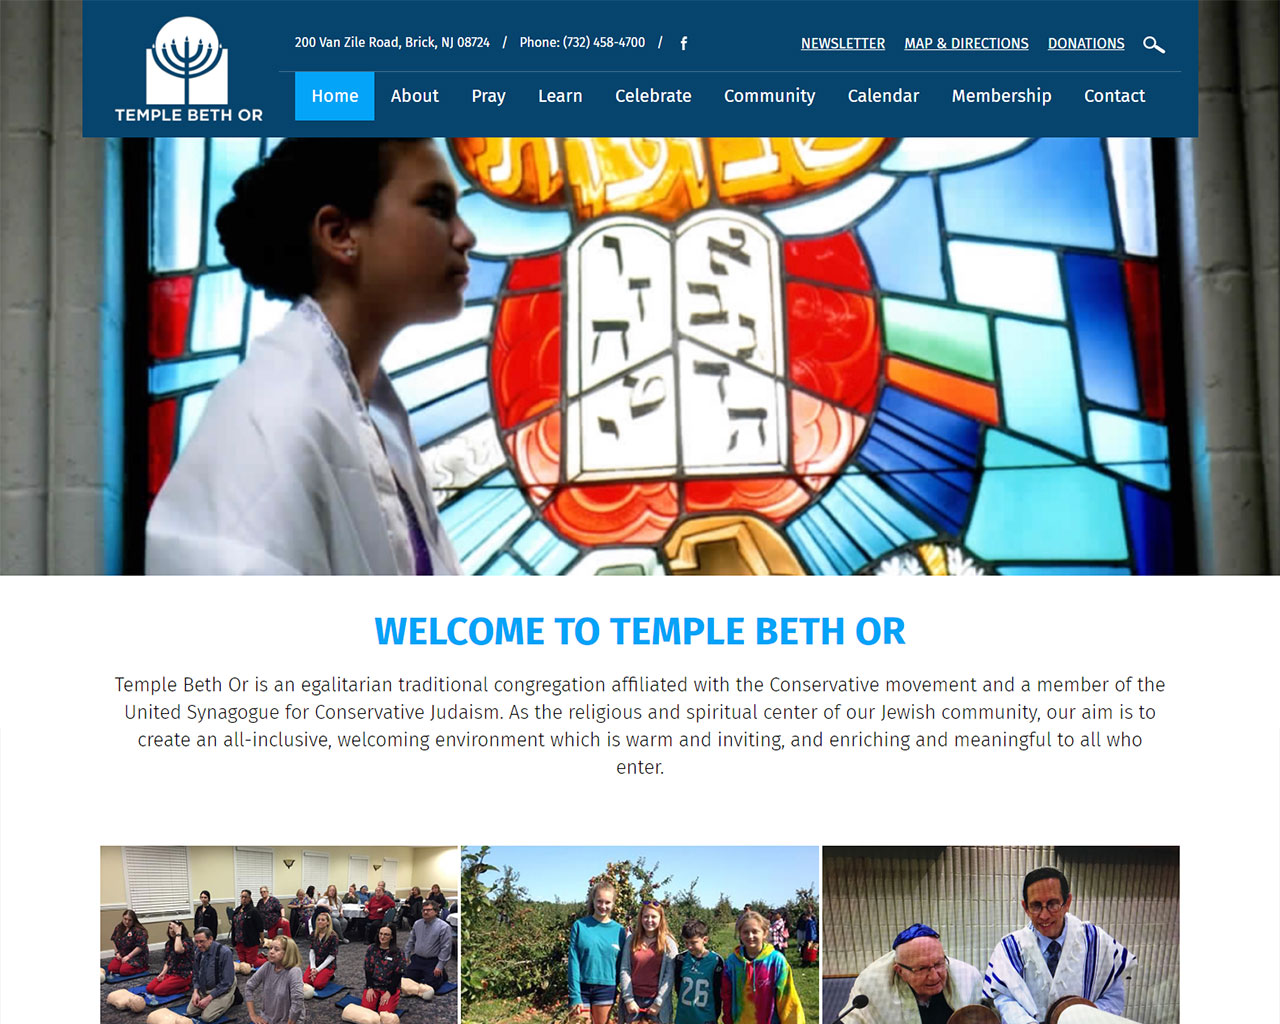 Temple Beth Or - synagogue website homepage design